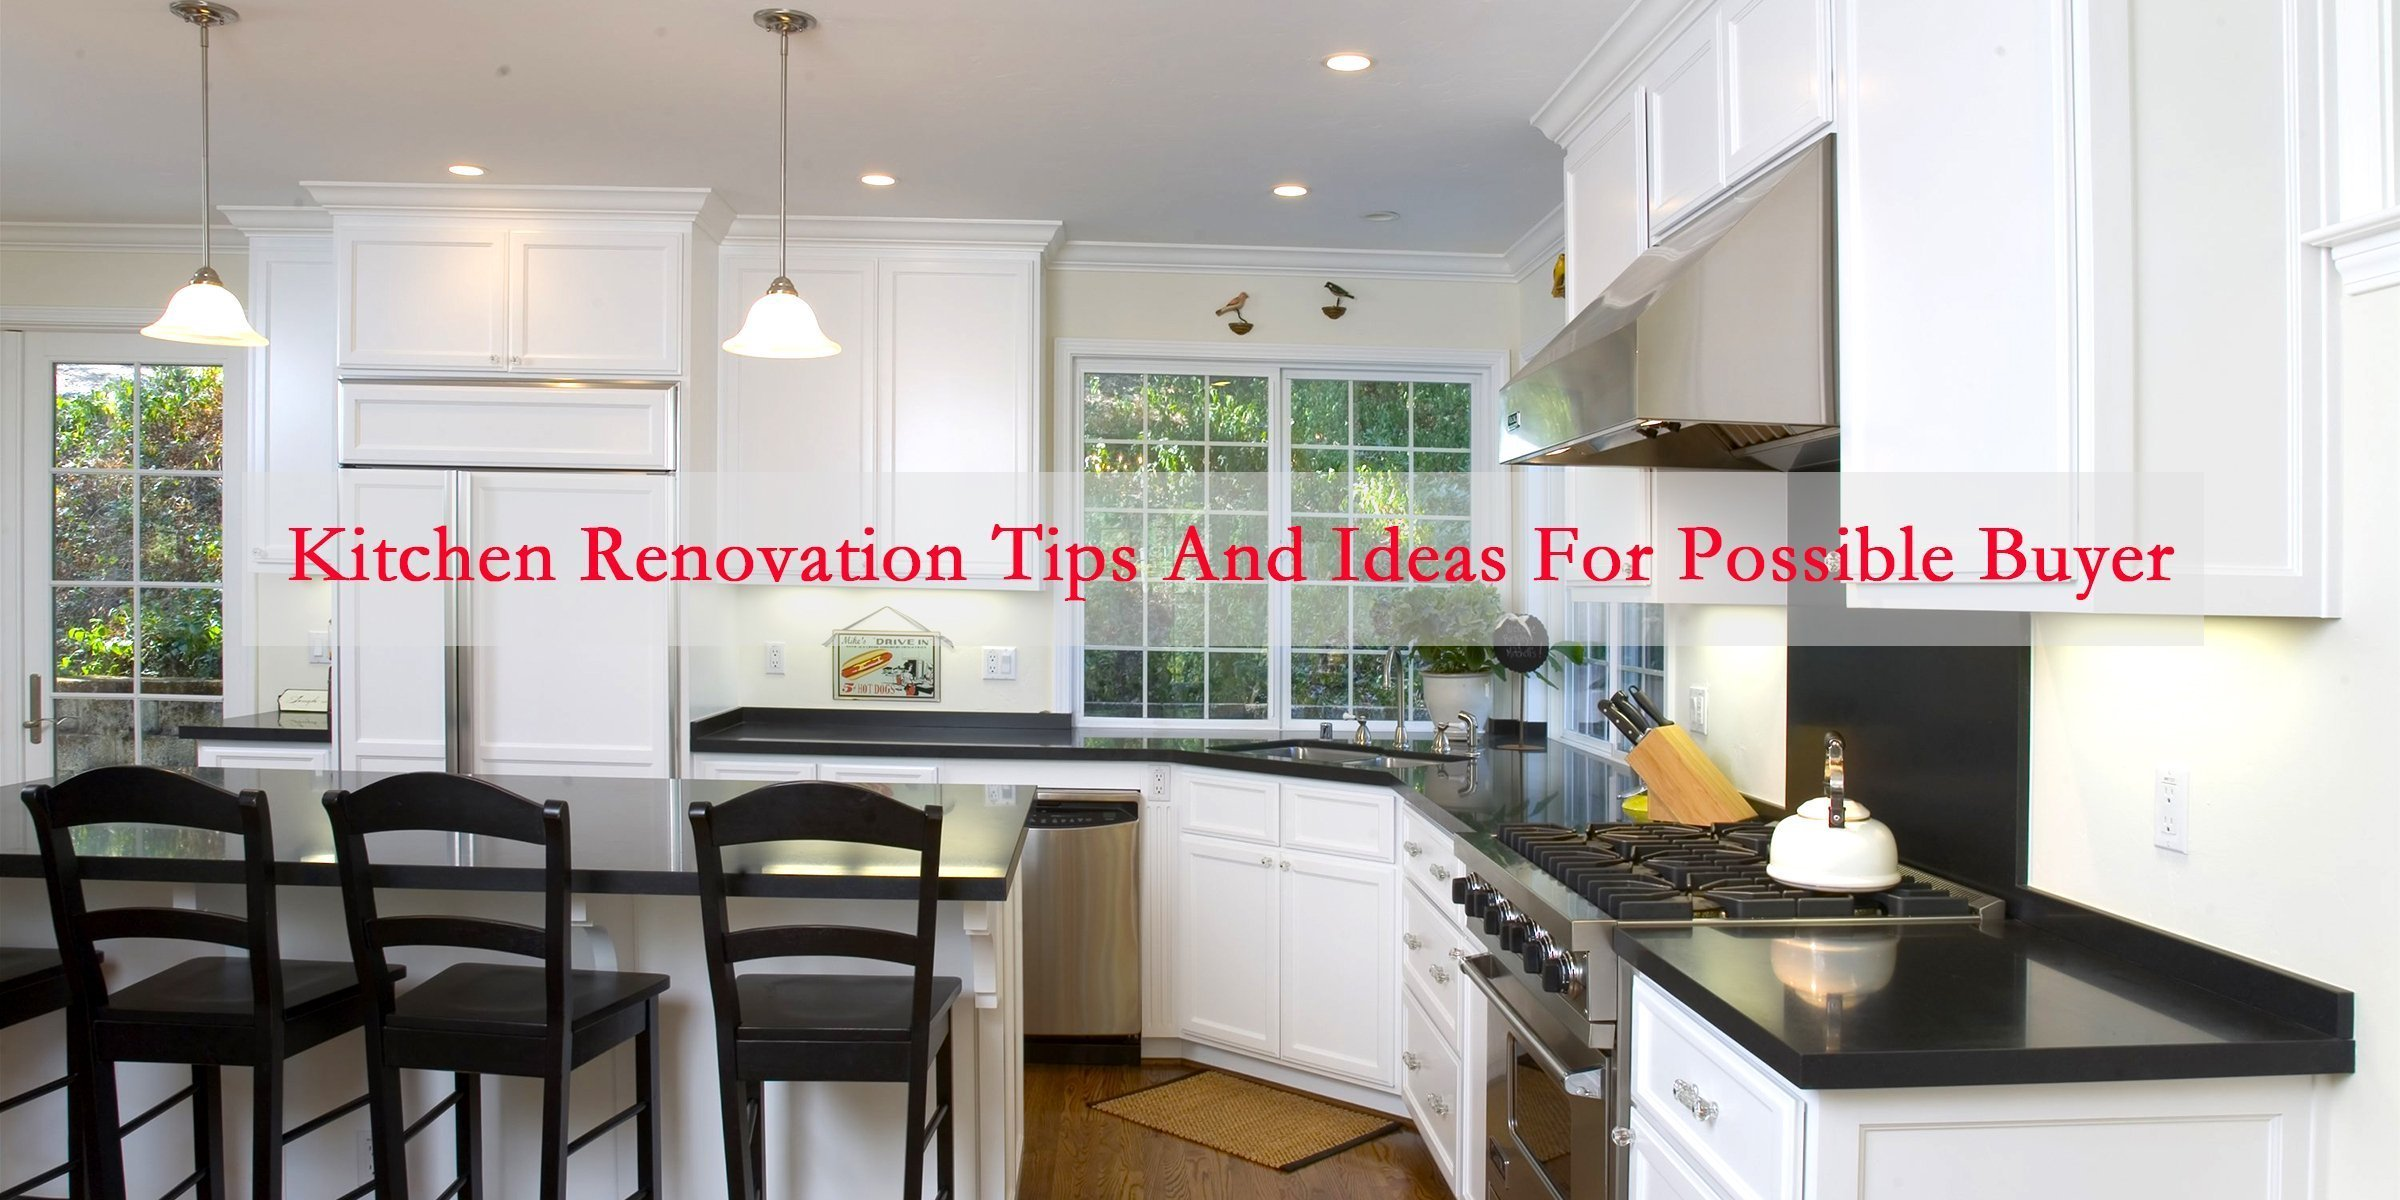 Kitchen Renovation Tips And Ideas For Possible Buyer in 2020 Cabinet Project - 1